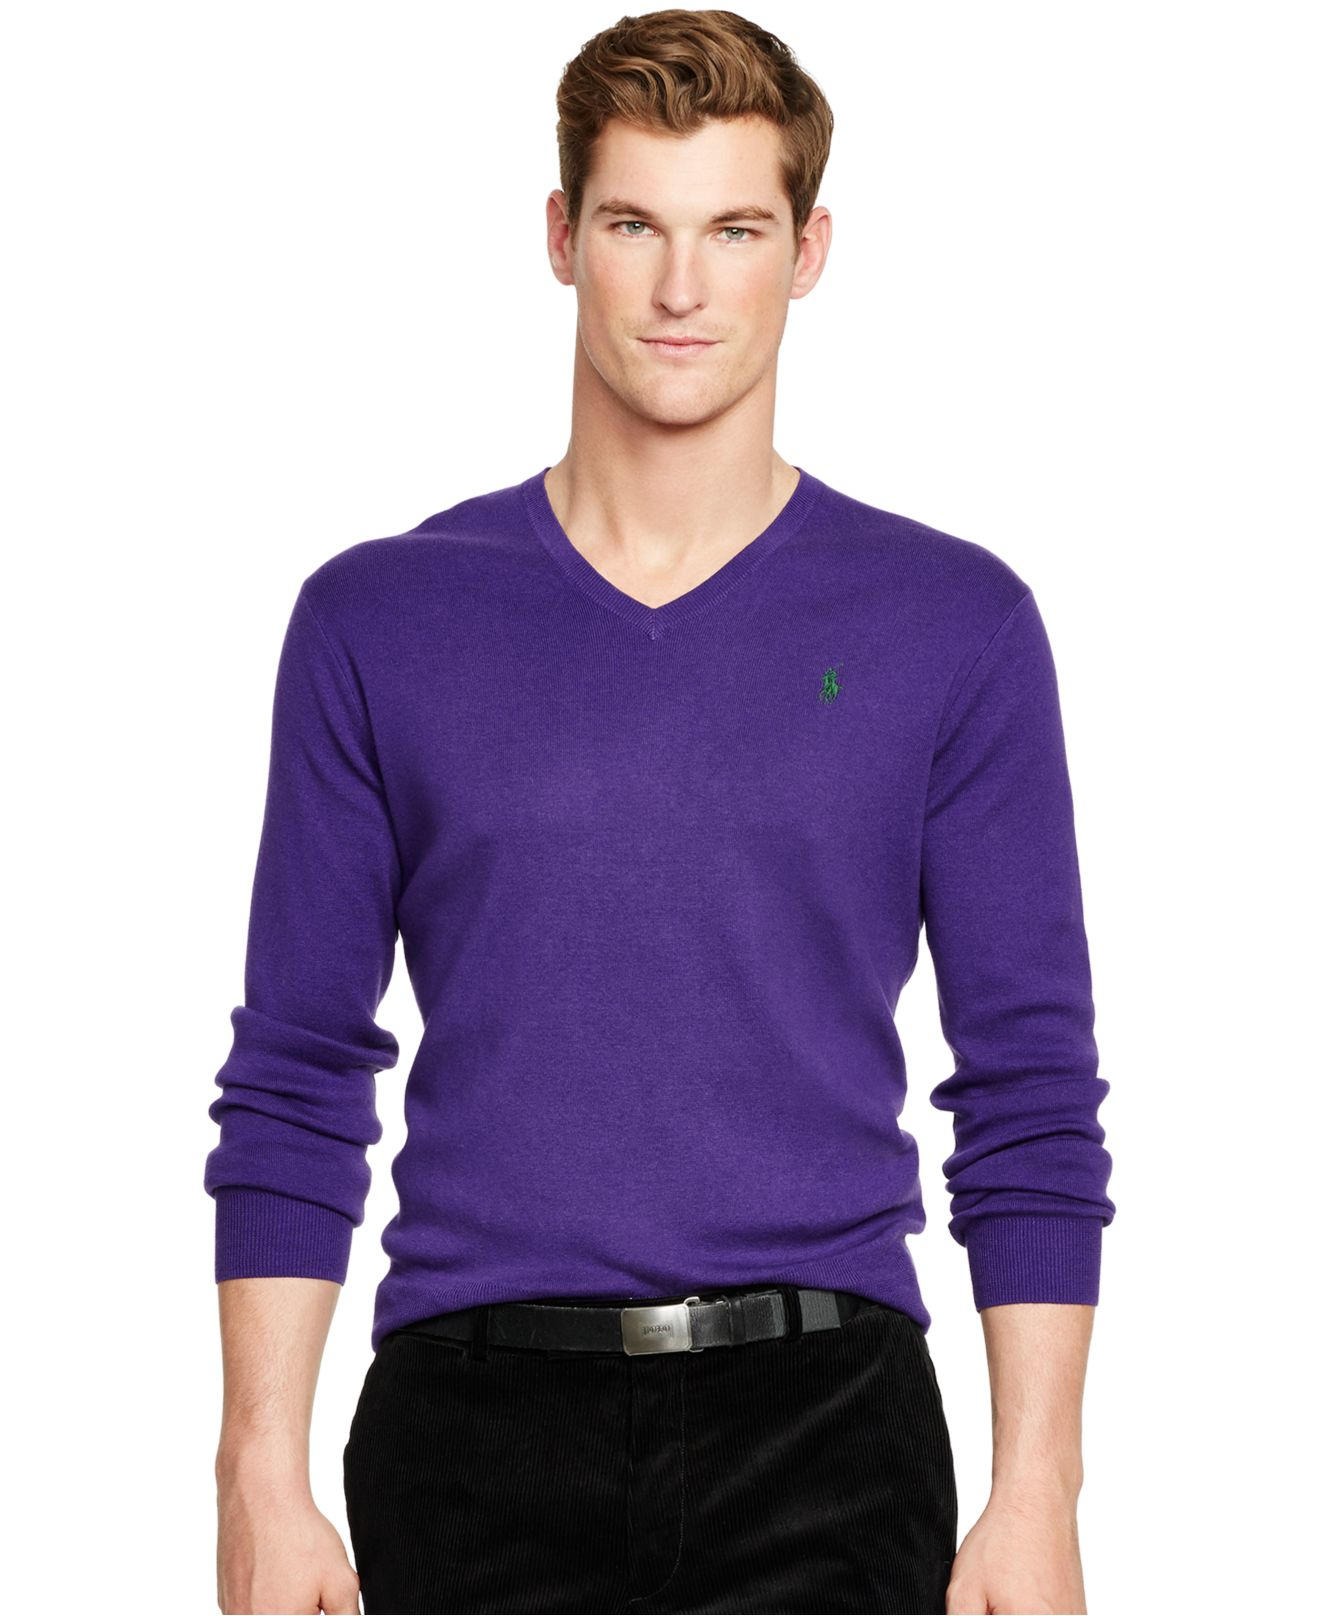 lyst polo ralph lauren pima v neck sweater in purple for men. Black Bedroom Furniture Sets. Home Design Ideas